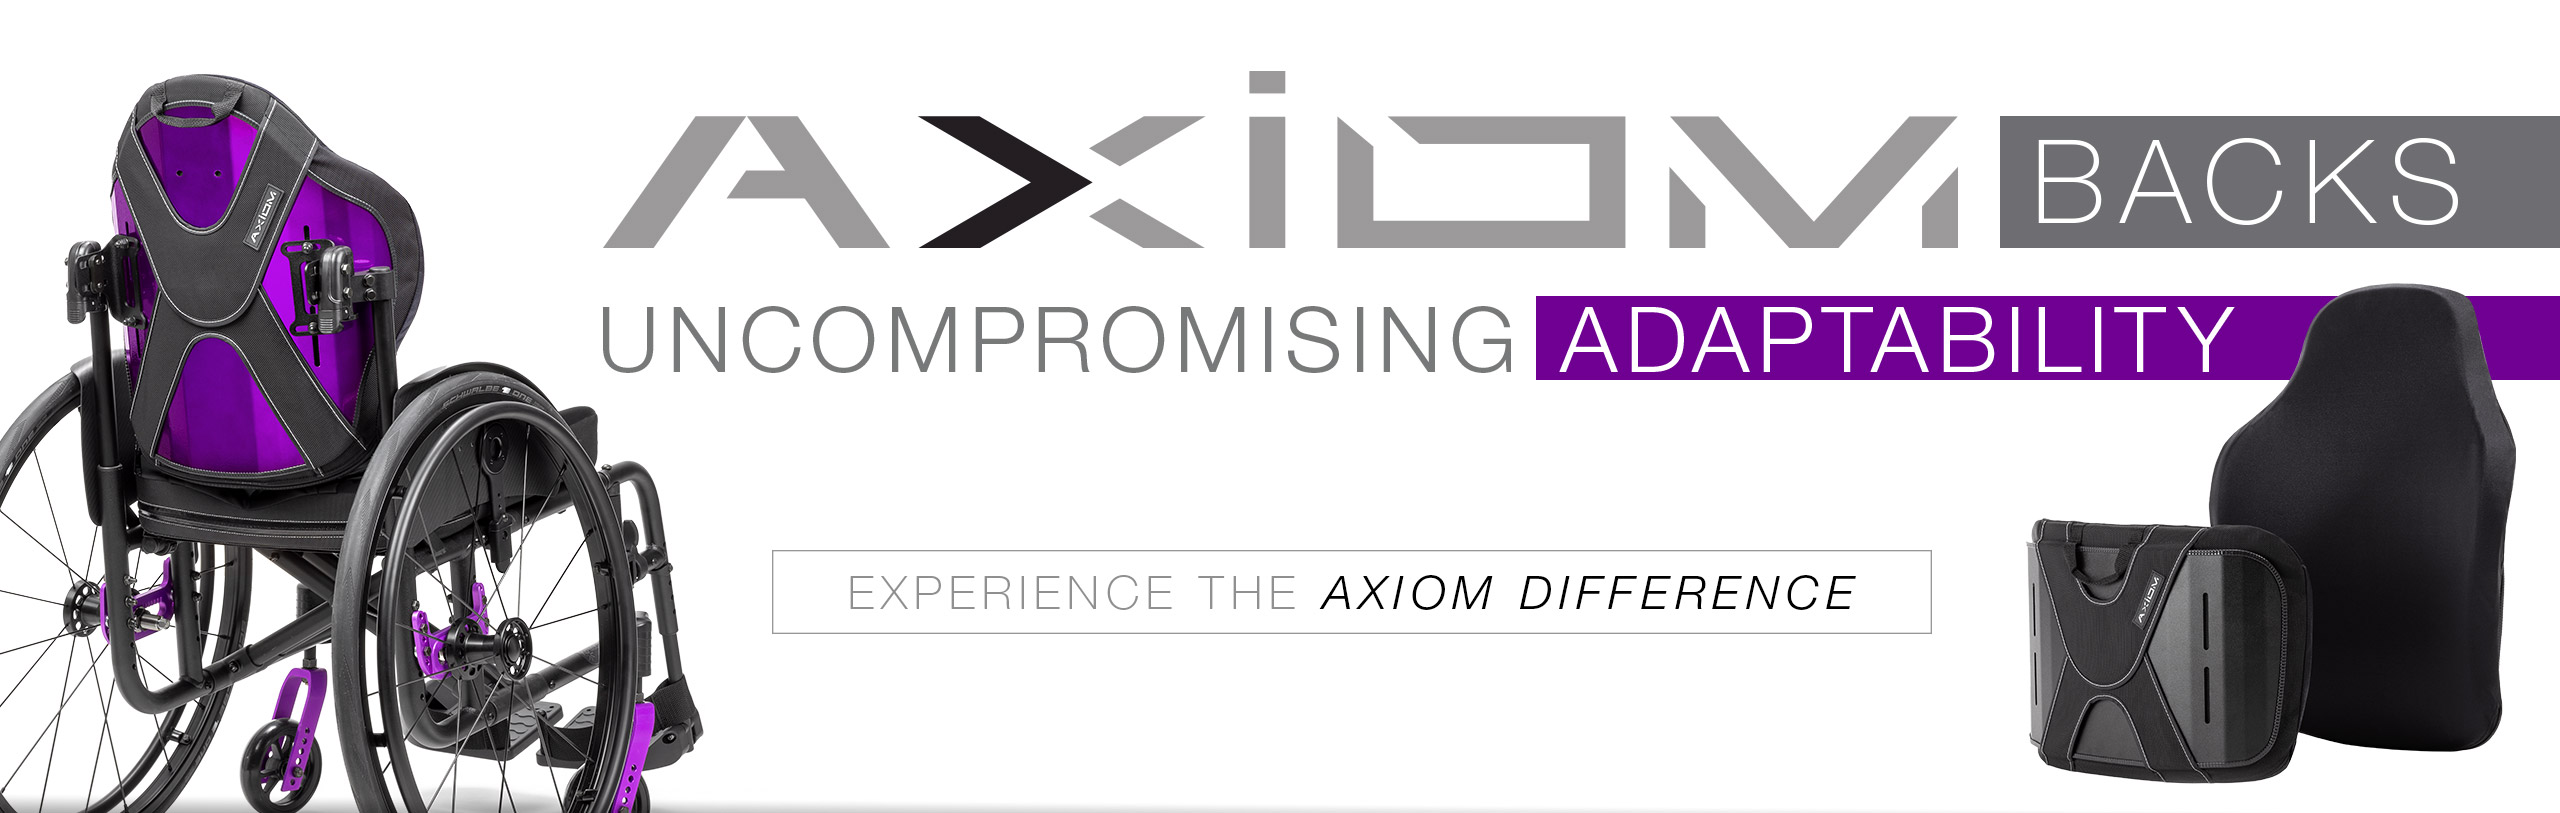 Introducing Axiom Backs